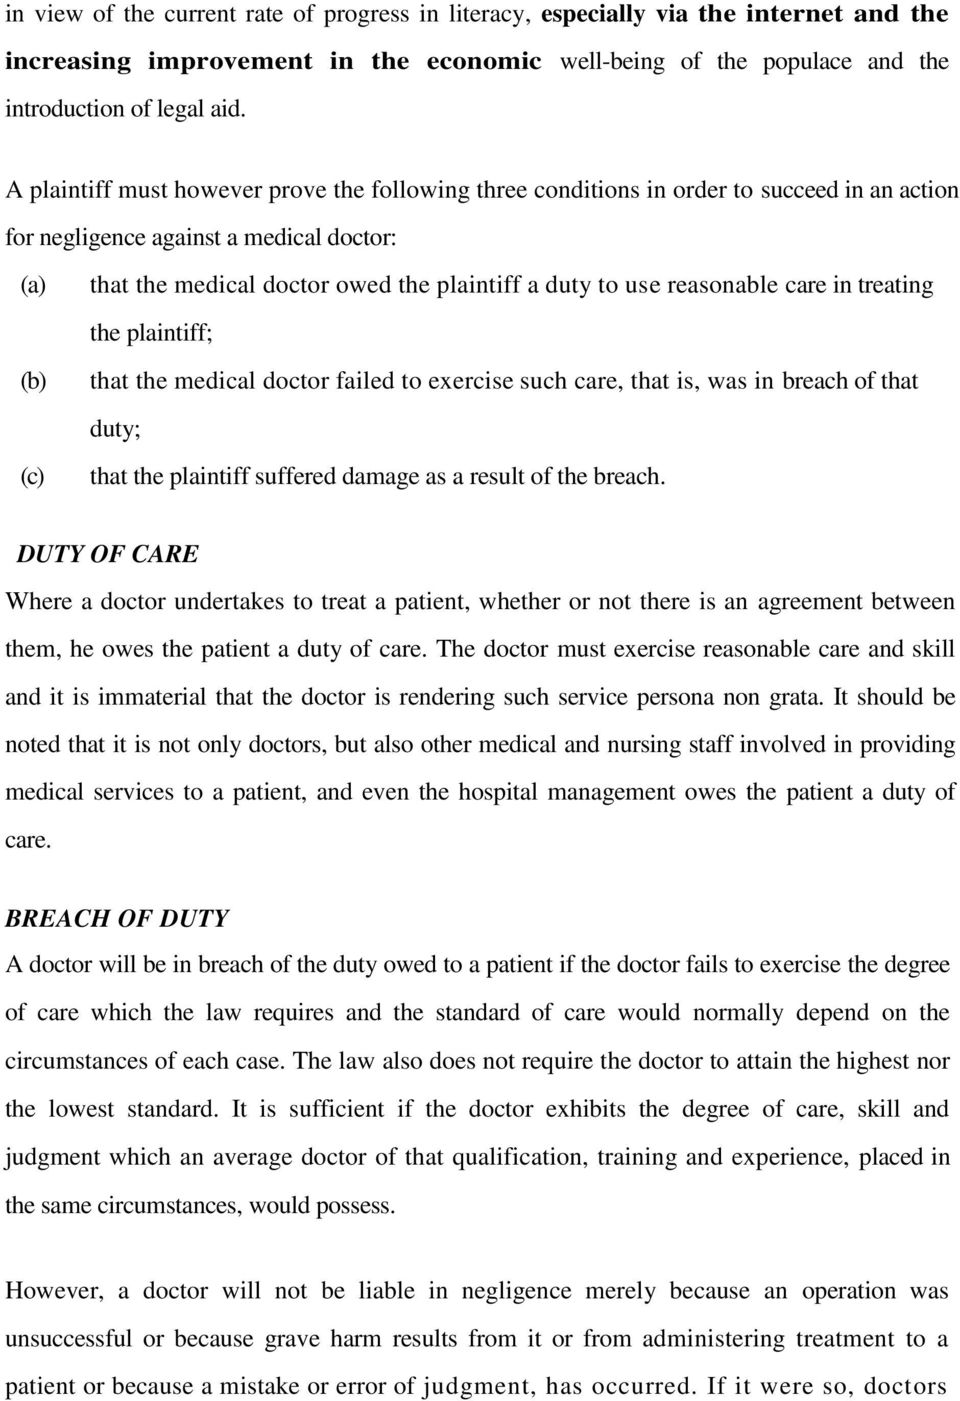 to use reasonable care in treating the plaintiff; that the medical doctor failed to exercise such care, that is, was in breach of that duty; that the plaintiff suffered damage as a result of the